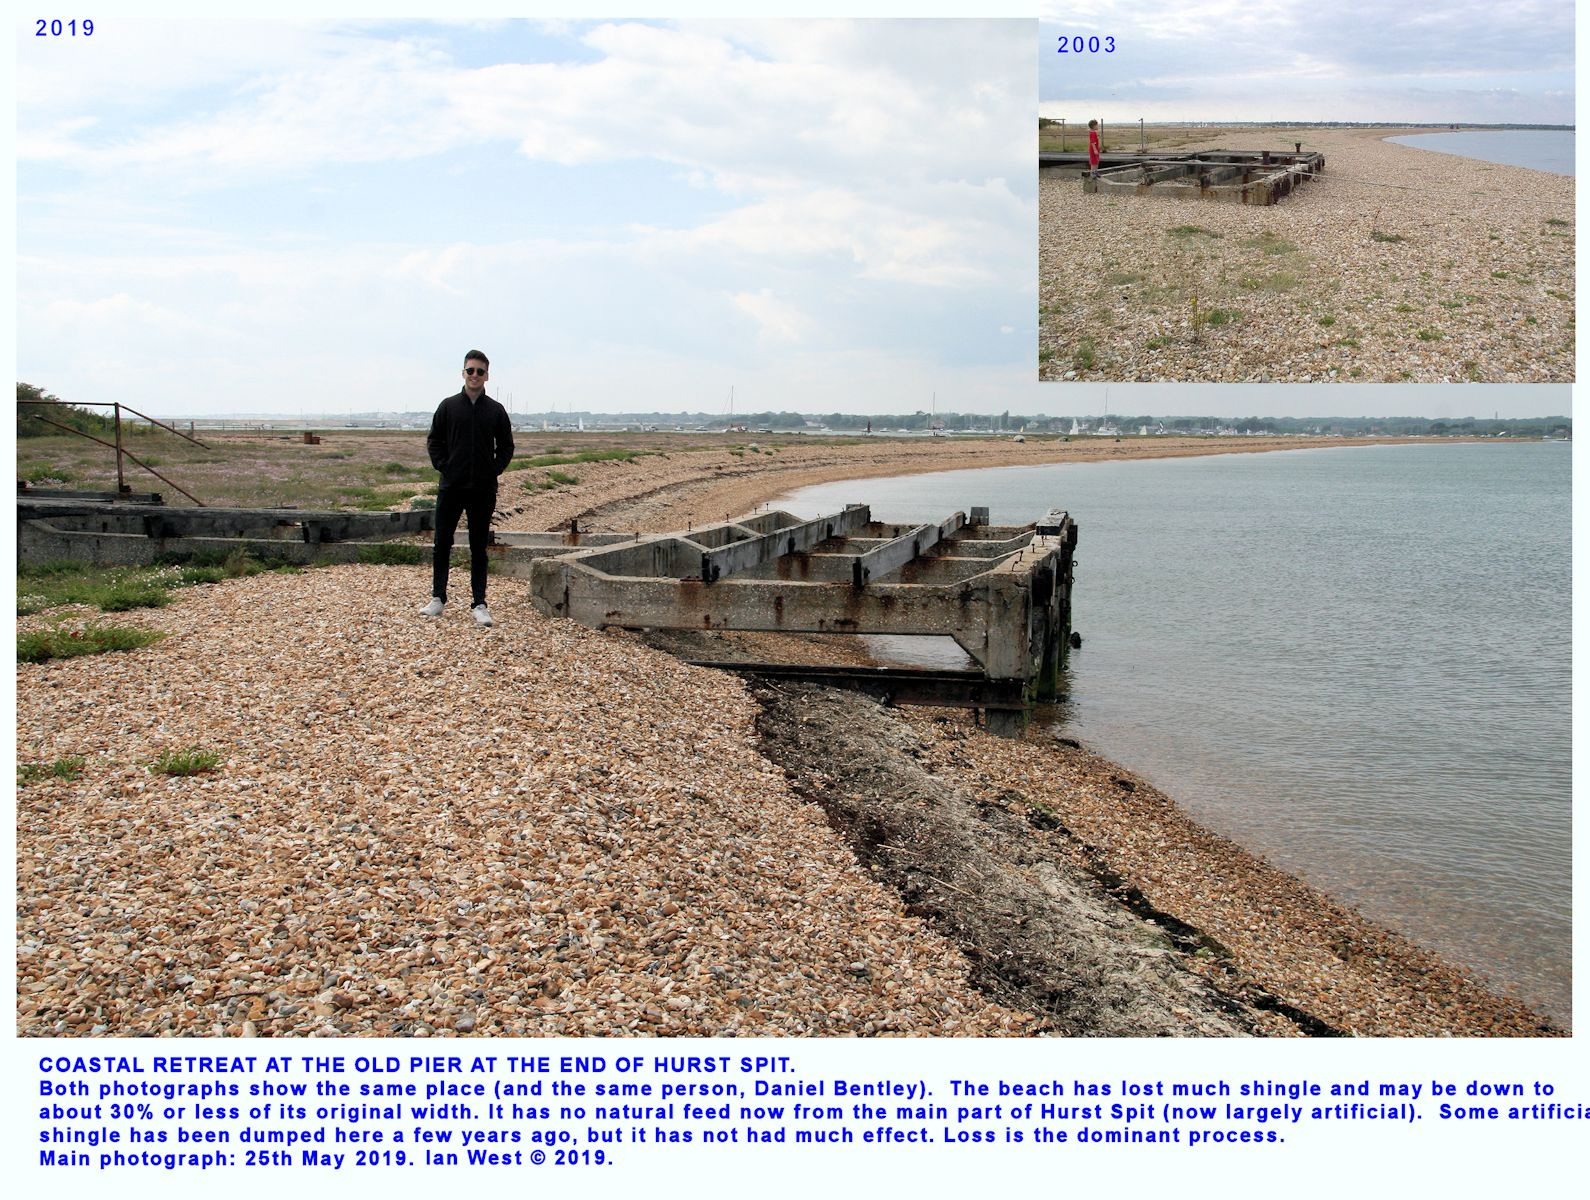 The old pier at the southeastern end of Hurst Spit with photographs of 2003 and 2019 showing the  extent of coastal retreat that has taken place just here